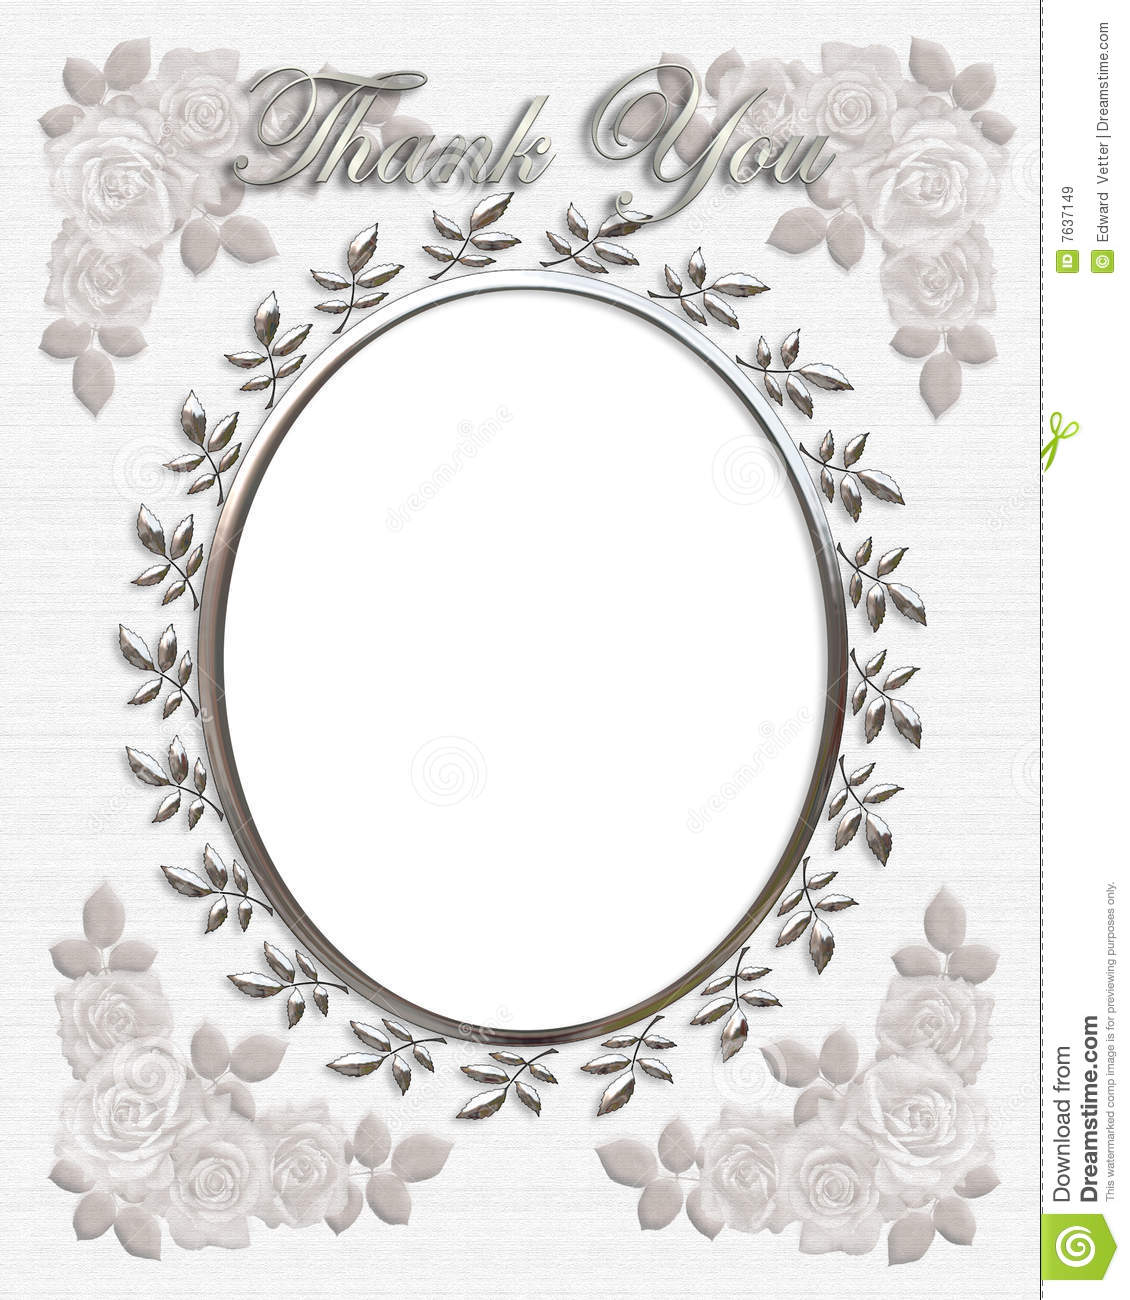 oval frame with pretty silver accents for wedding thank you card ...